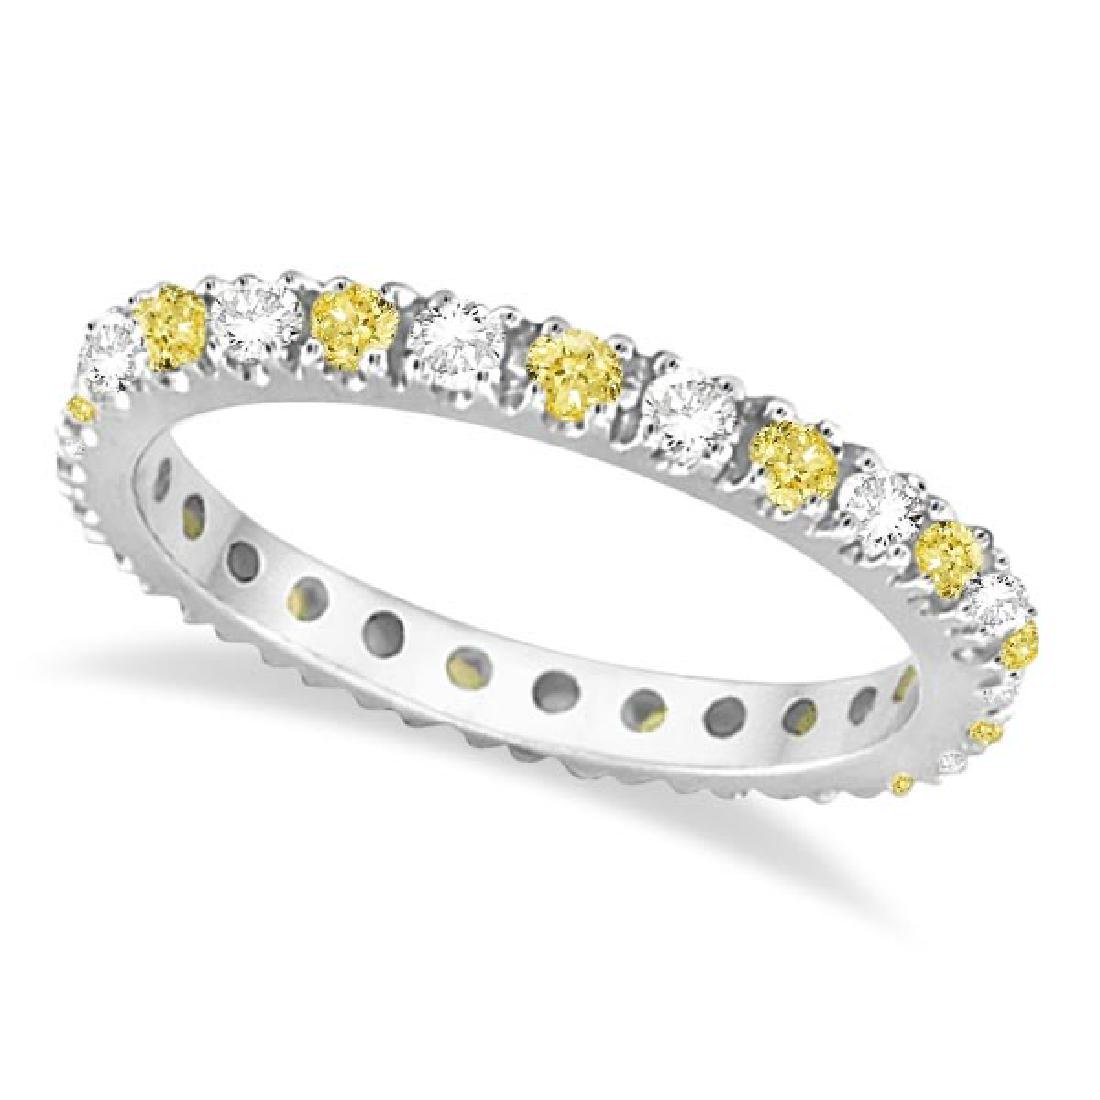 Fancy Yellow Canary and White Diamond Eternity Ring Ban